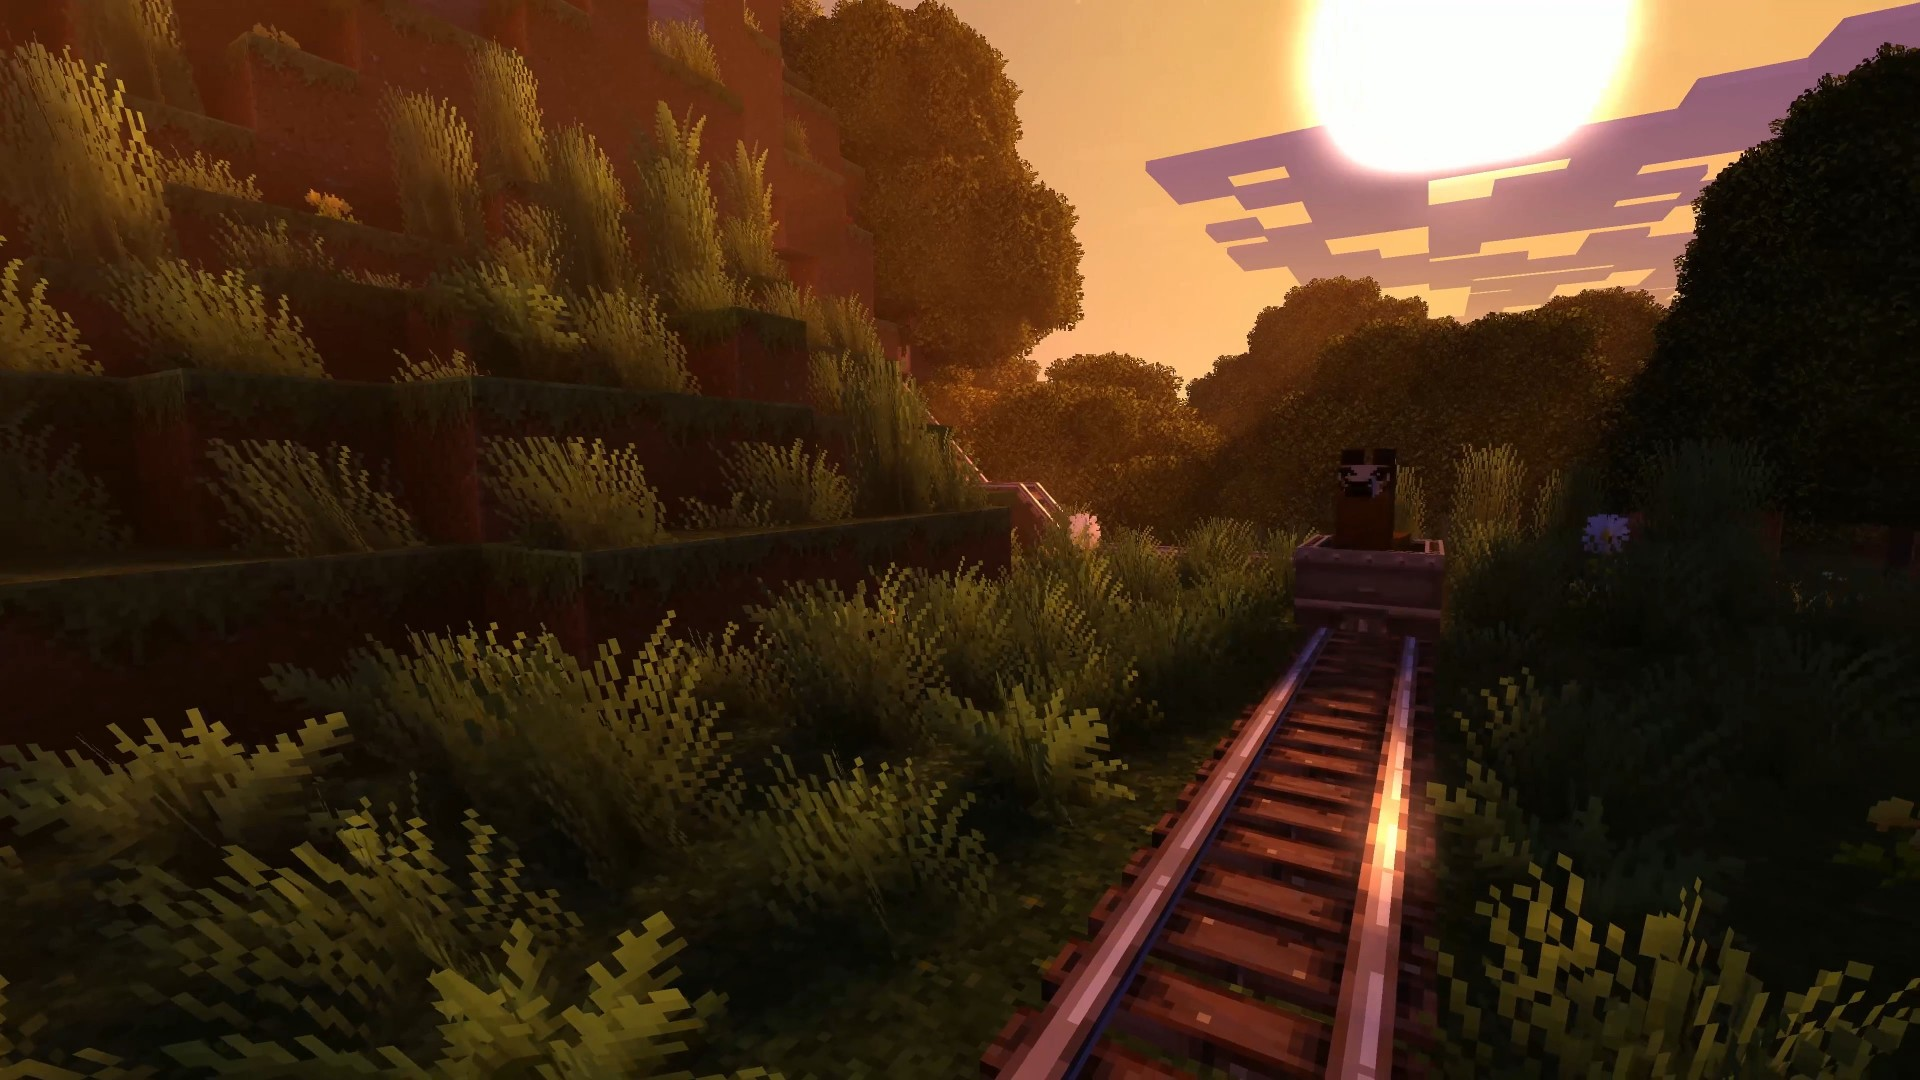 Our editors independently research, test, and recommend the best products; Wallpaper Minecraft 4k edition, E3 2017, xBox One X